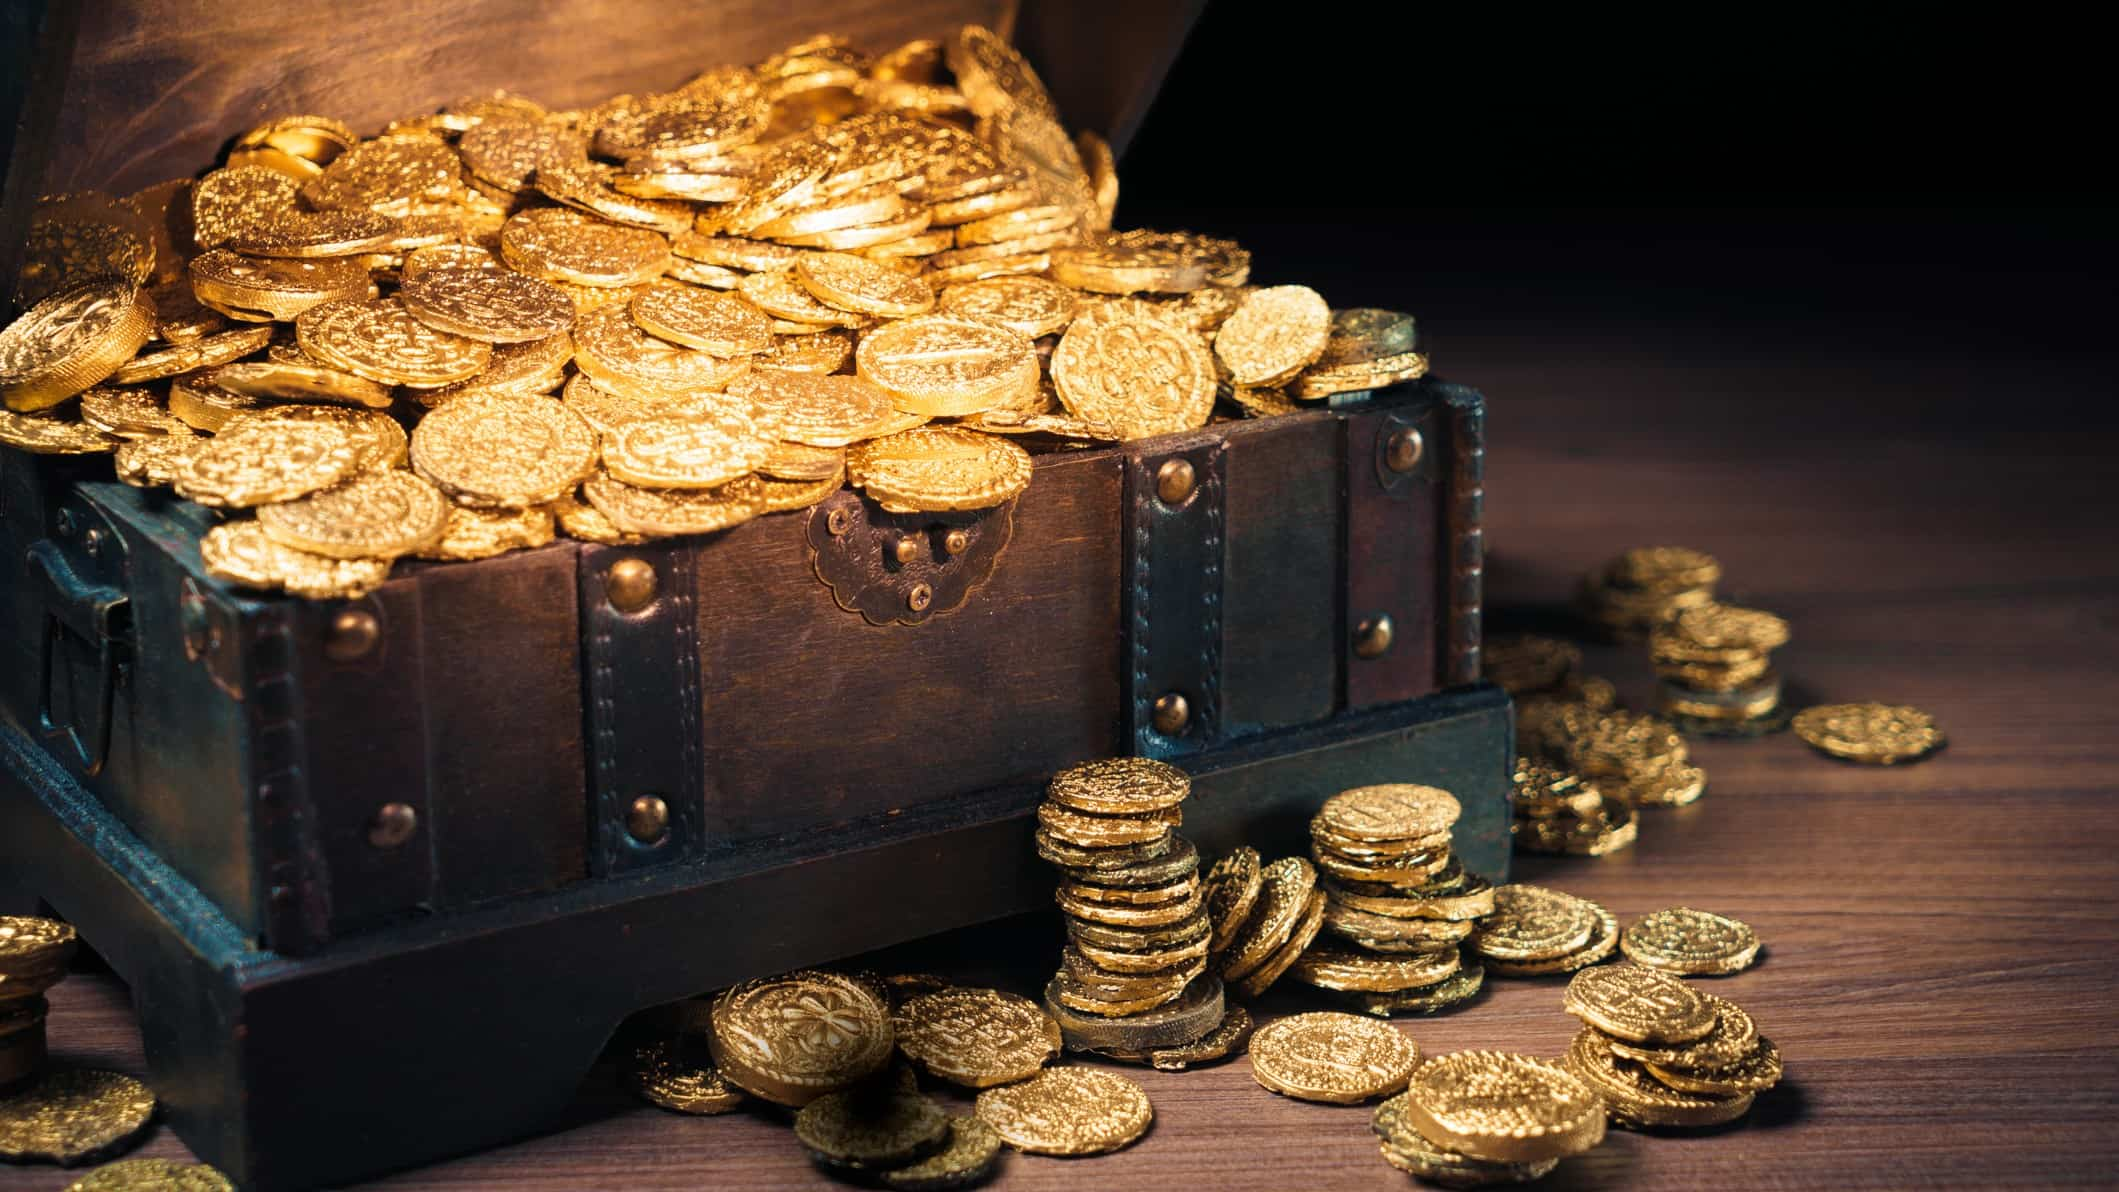 Old chest filled with gold coins